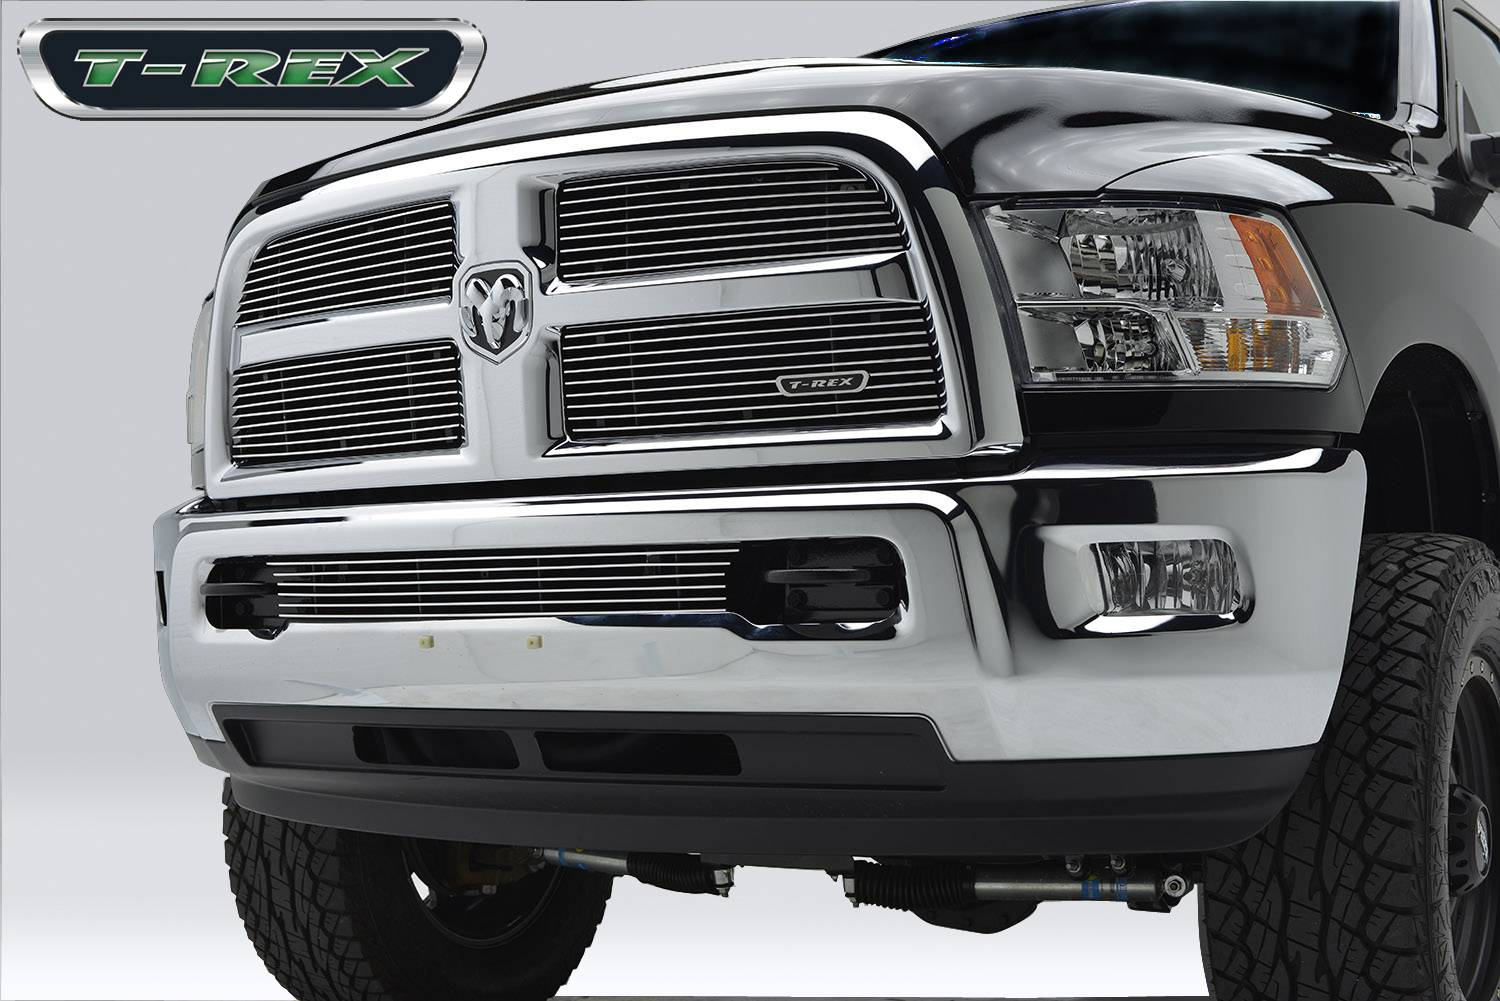 T-REX Grilles - Dodge Ram PU 2500 / 3500 Billet Grille, Main, Replacement, 4 Pc's, Polished Aluminum Bars, Requires replacement of inside chrome - Pt # 21452